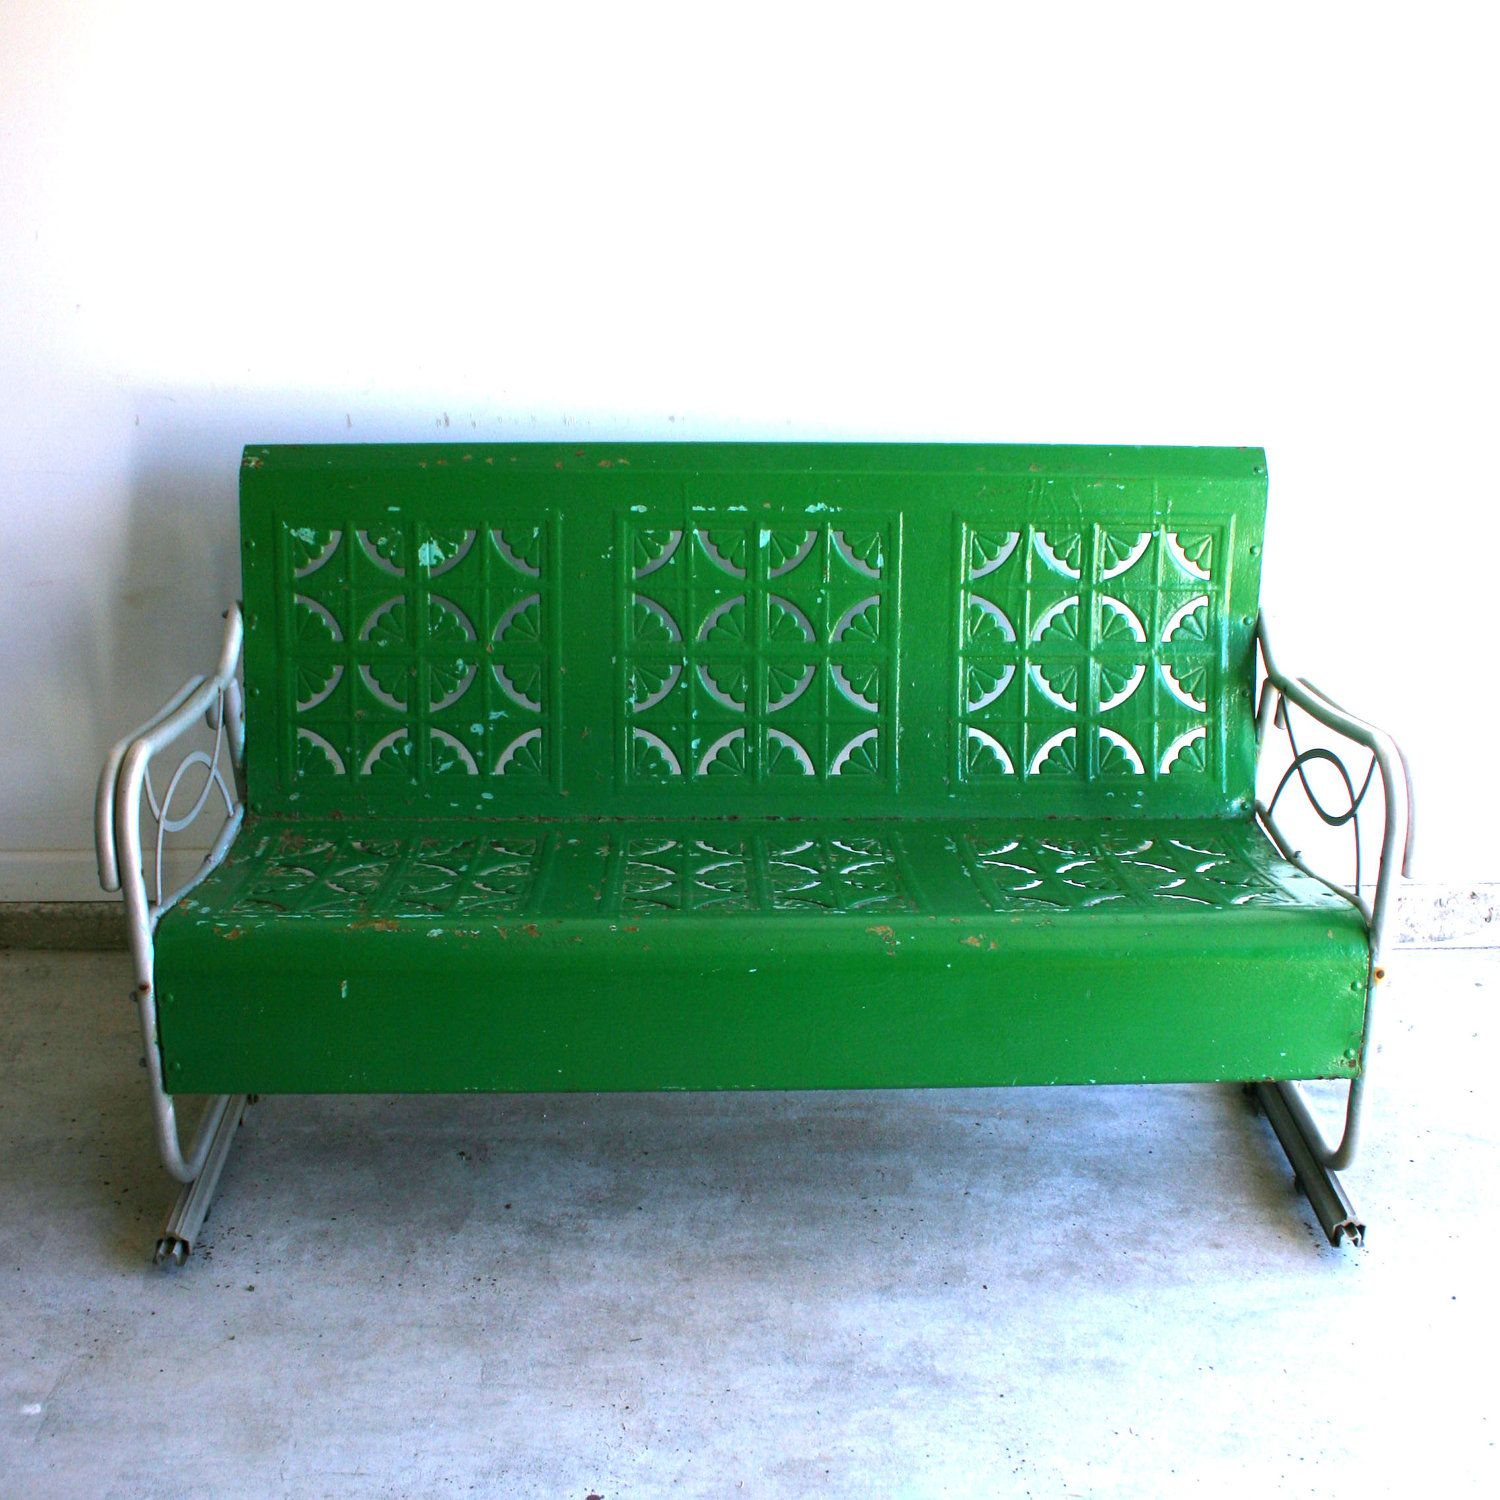 Spring Green Vintage Glider Metal Bench by RhapsodyAttic on Etsy